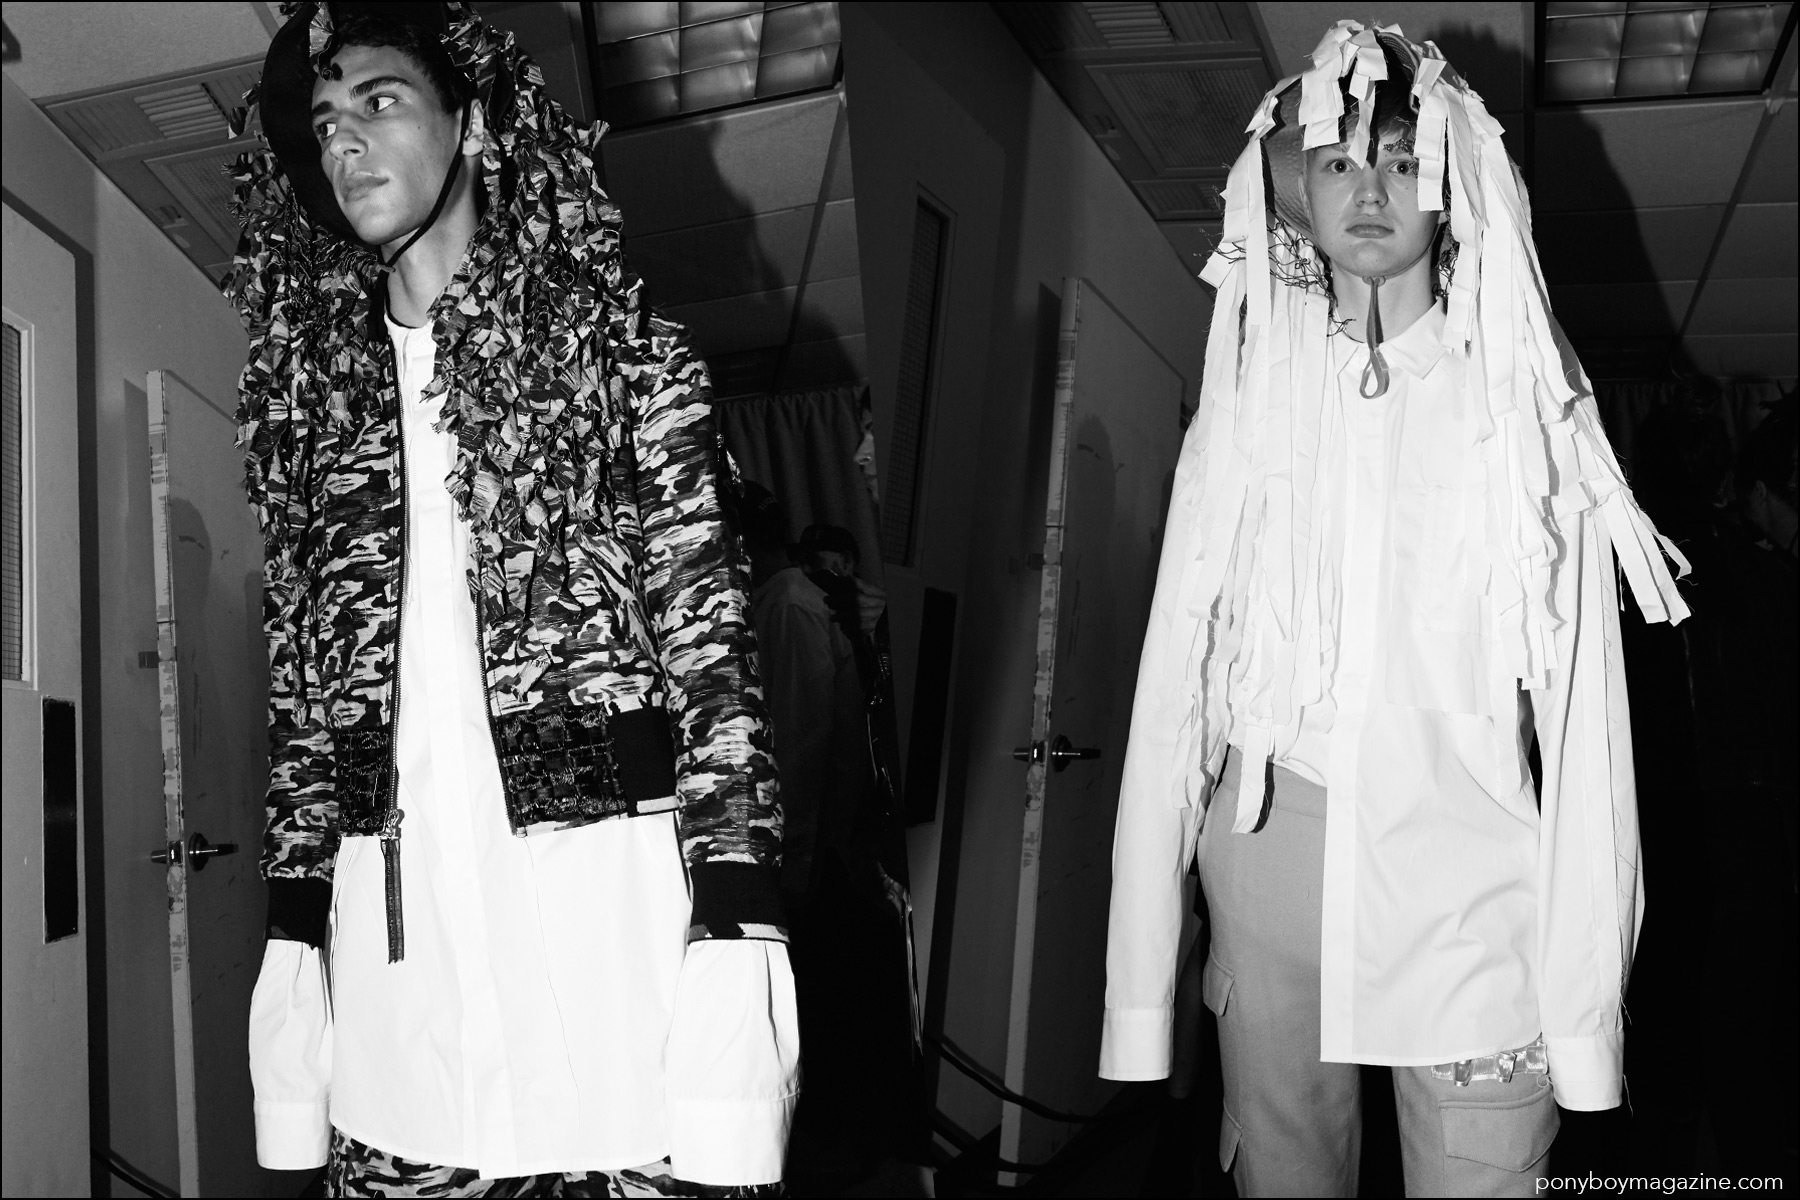 Models snapped backstage before walking at the Kenneth Ning Spring/Summer 2017 menswear presentation. Photographed by Alexander Thompson for Ponyboy magazine NY.